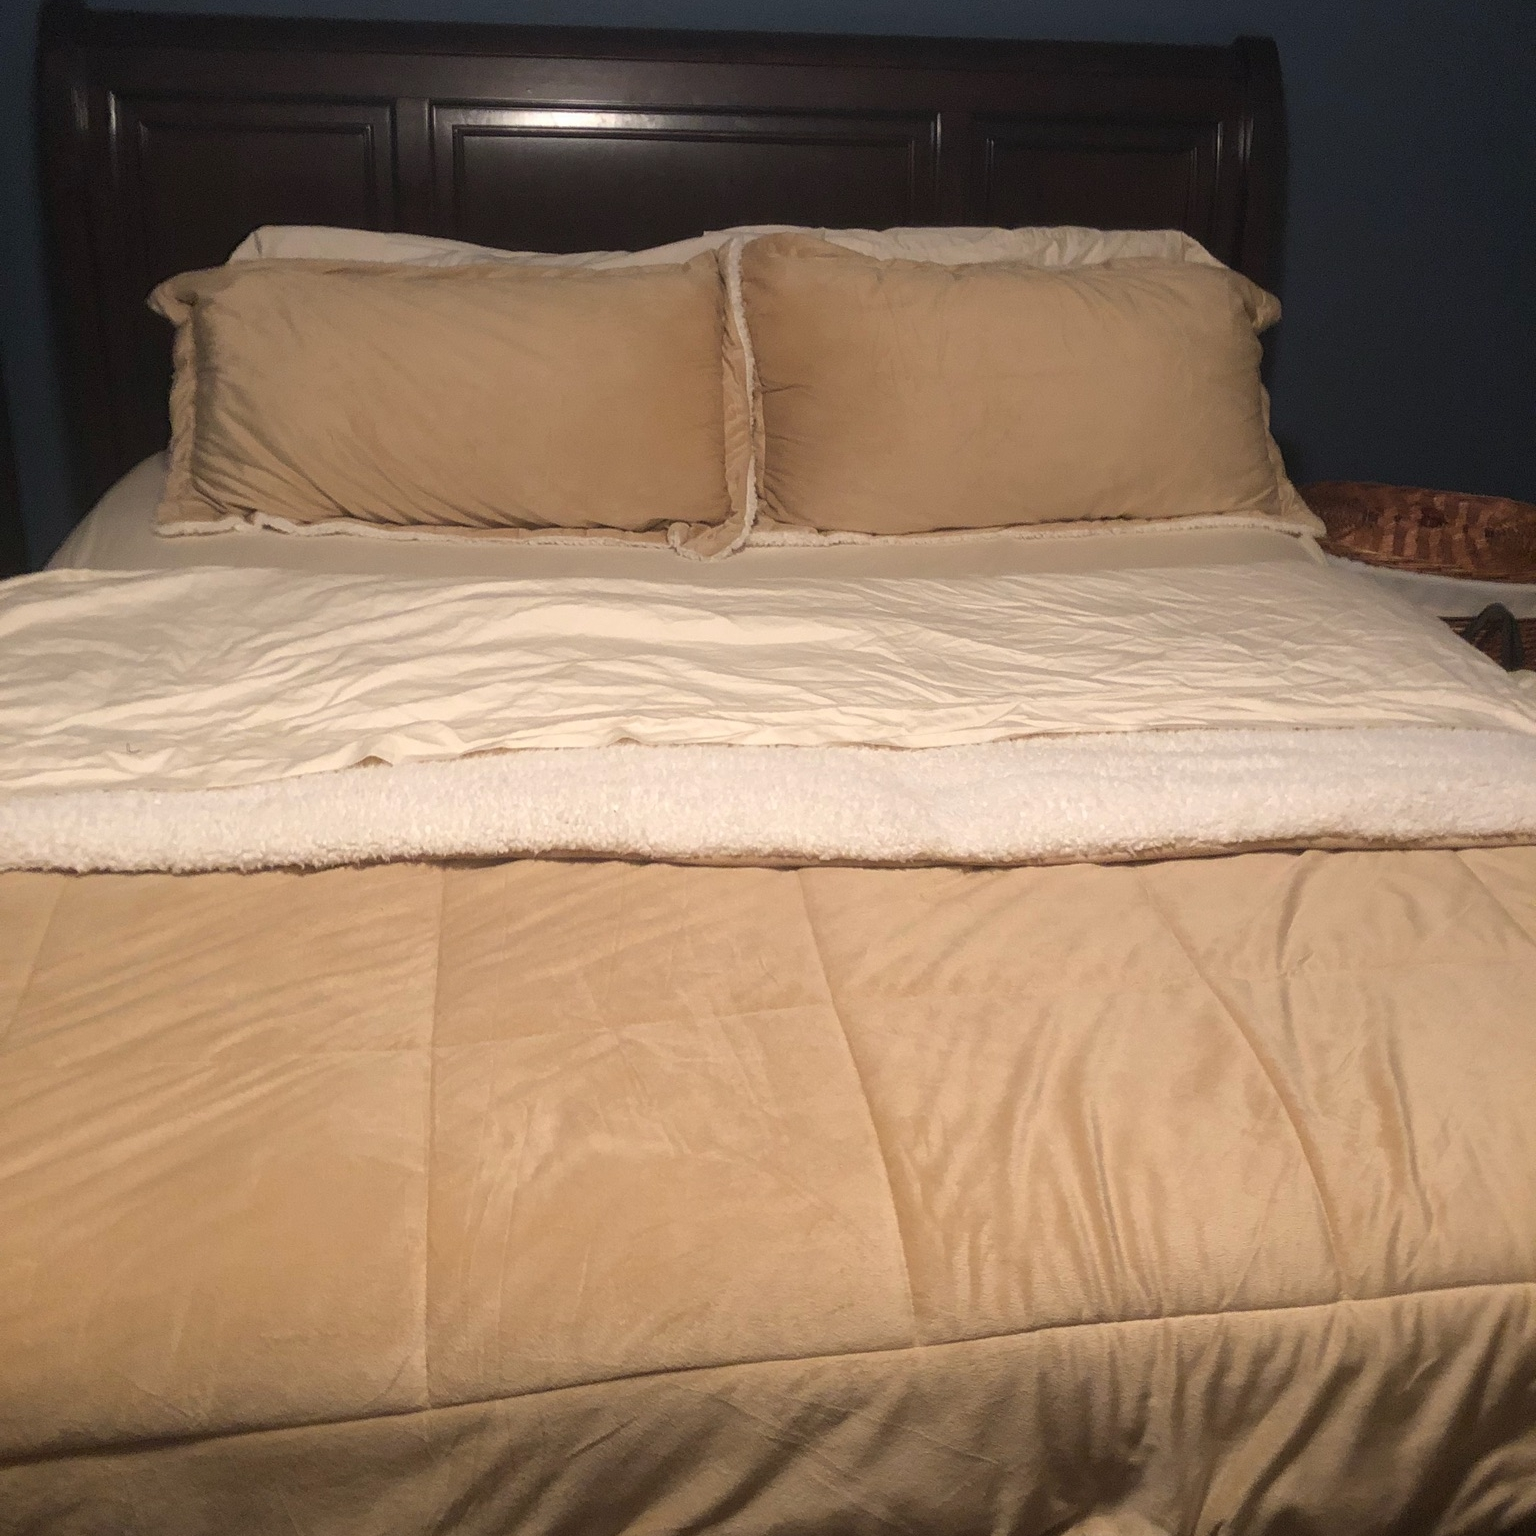 Sheets pictured here in 600-thread count, Ivory.